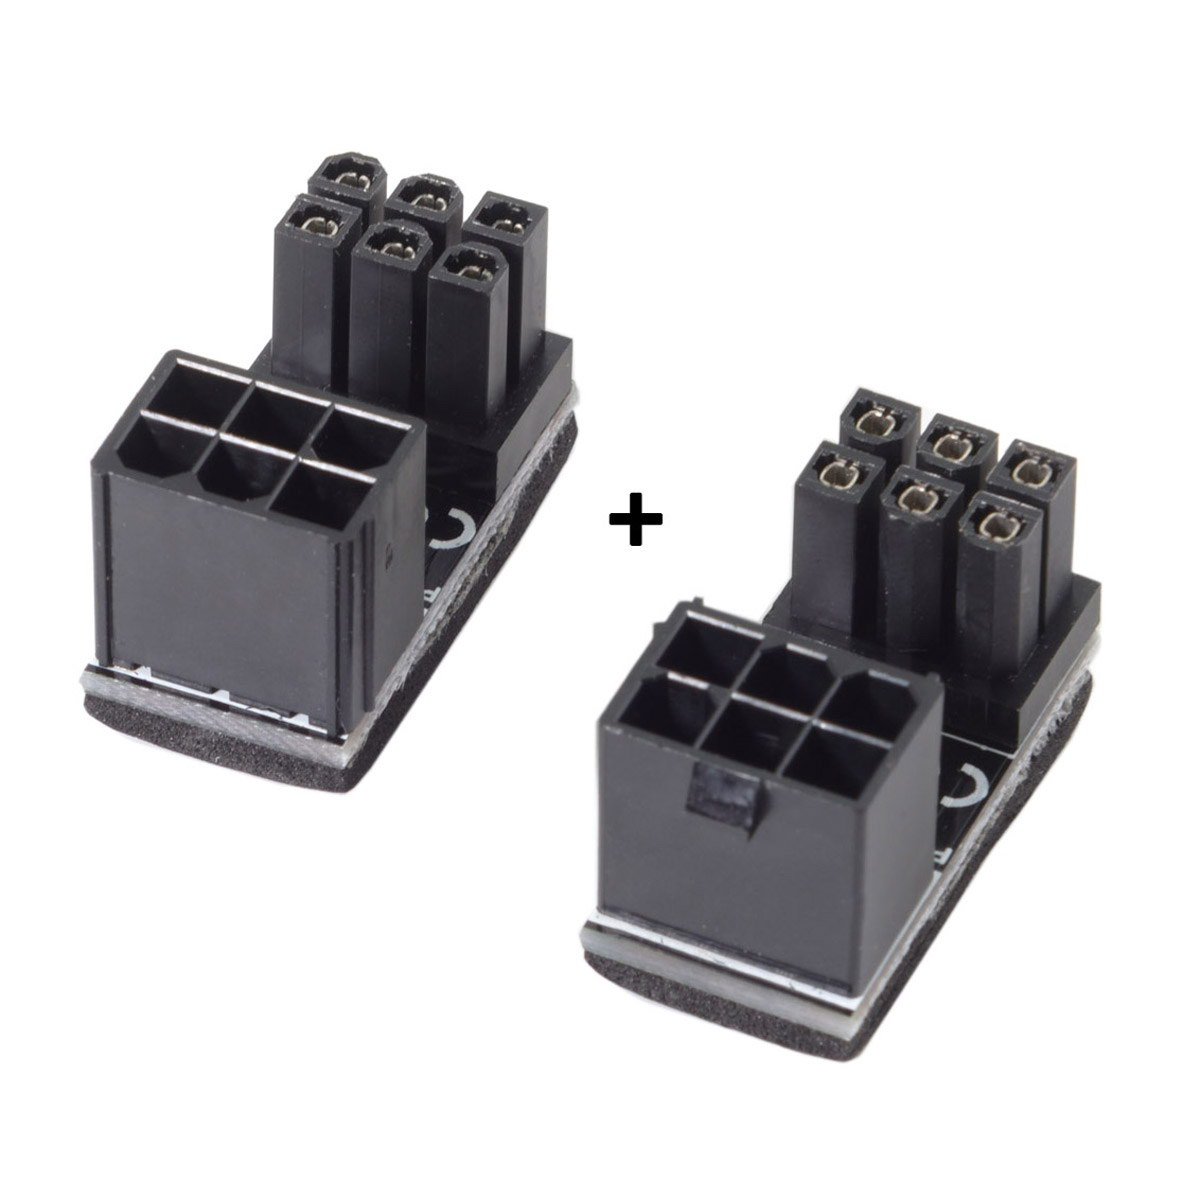 ATX 6Pin Female To 6pin Male 180 Degree AngledPower Adapter For Desktops Graphics Card